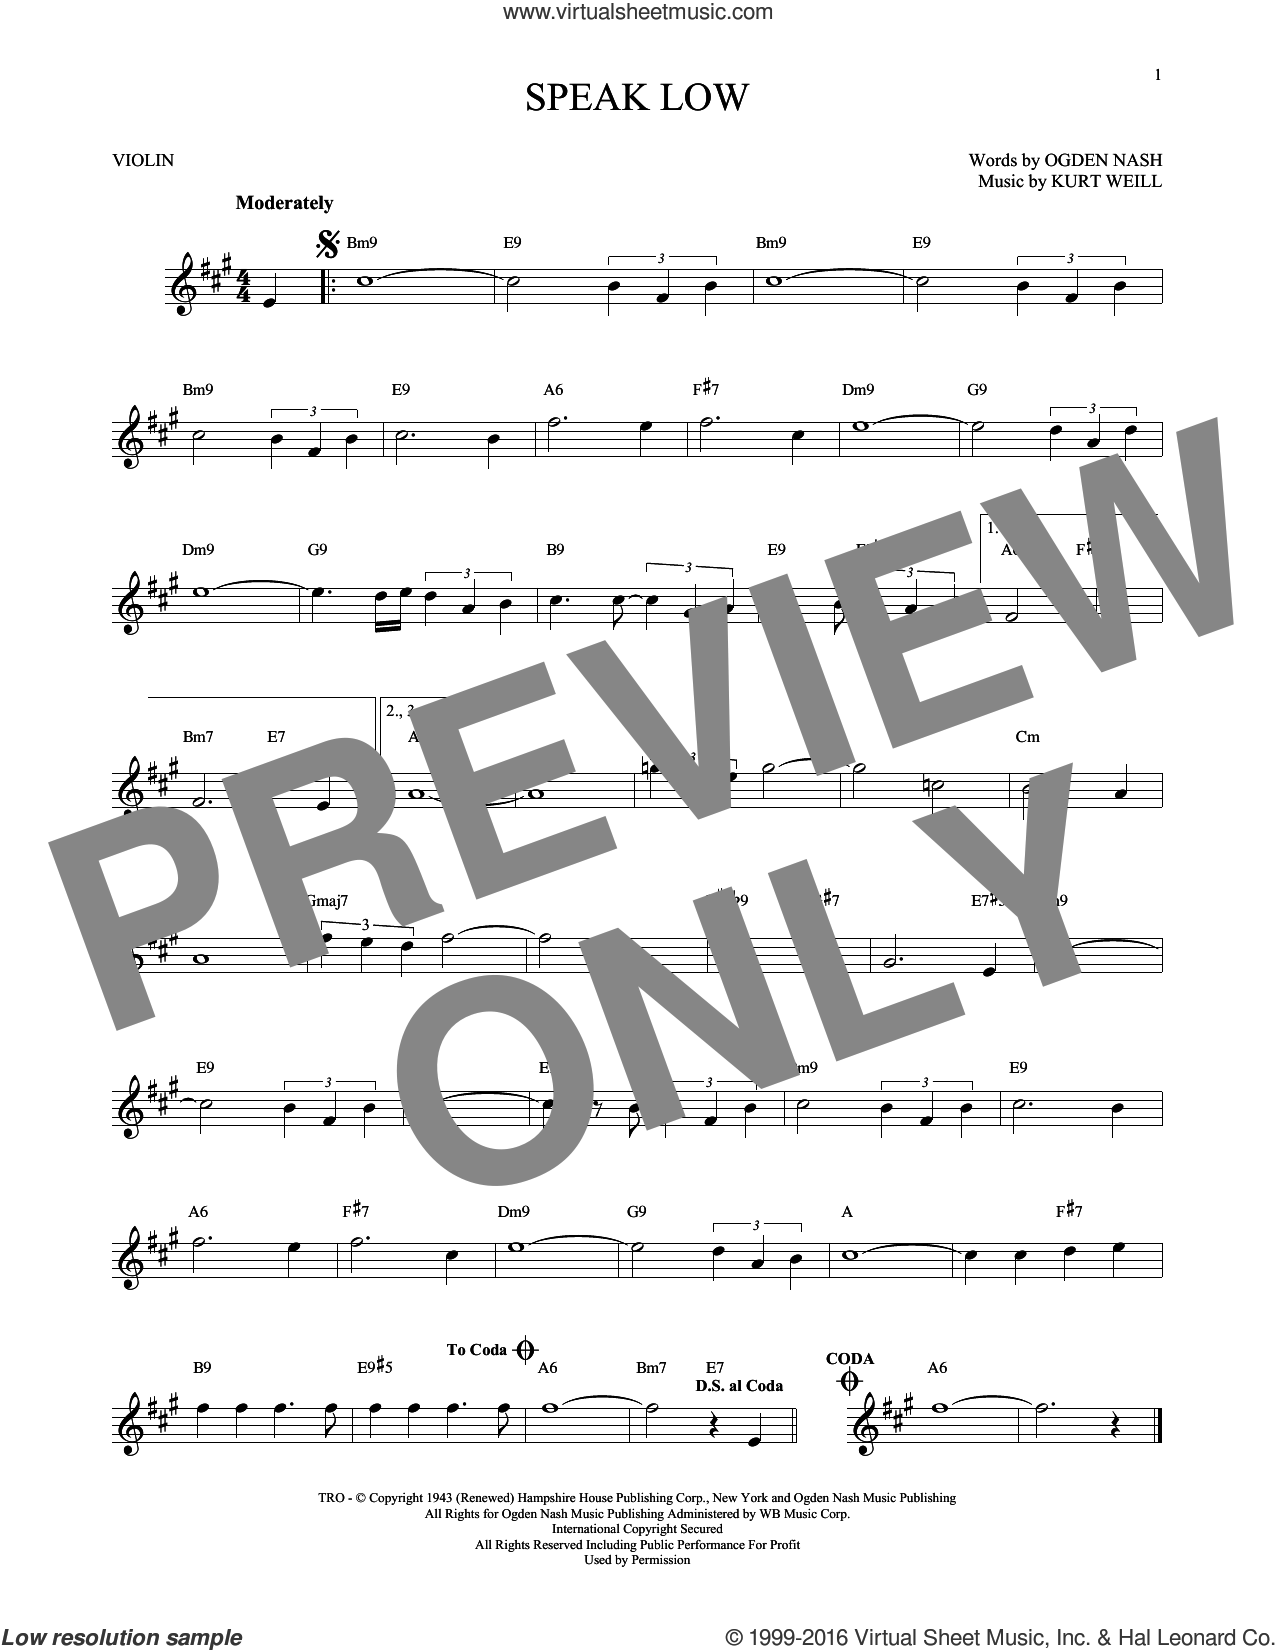 Speak Low sheet music for violin solo by Kurt Weill and Ogden Nash. Score Image Preview.